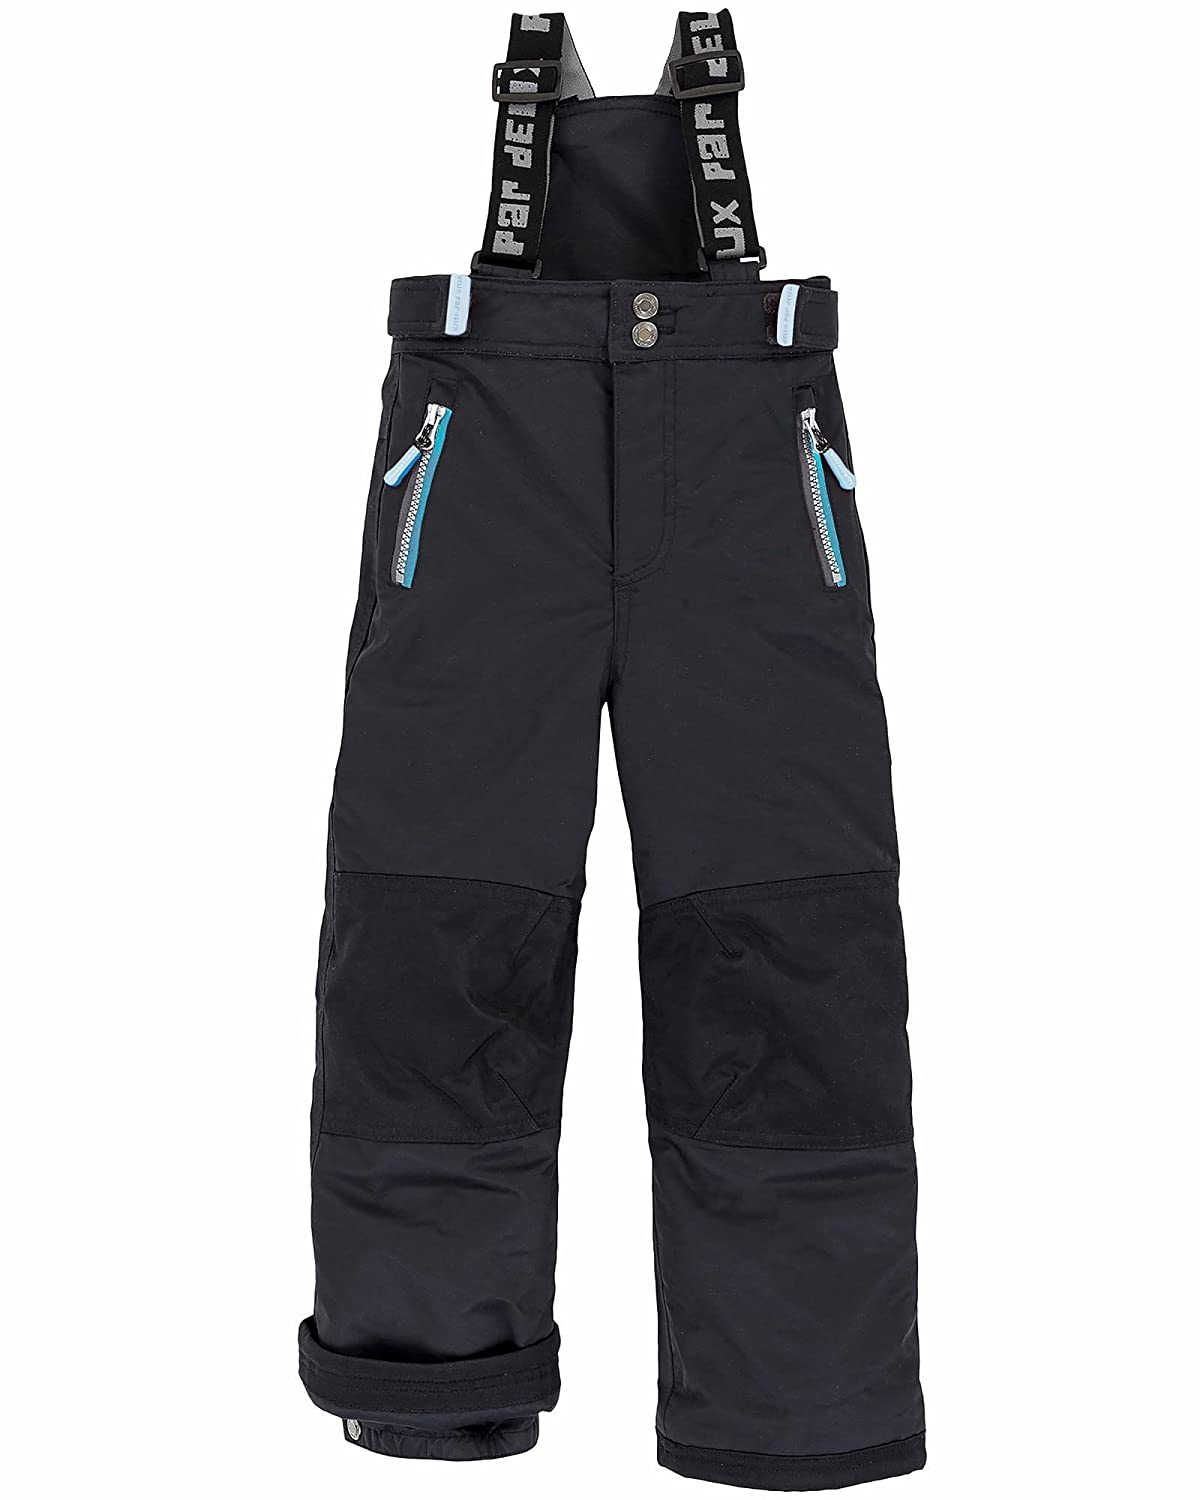 Deux par Deux Boys' Technical Snowpants Black, Sizes 7-14